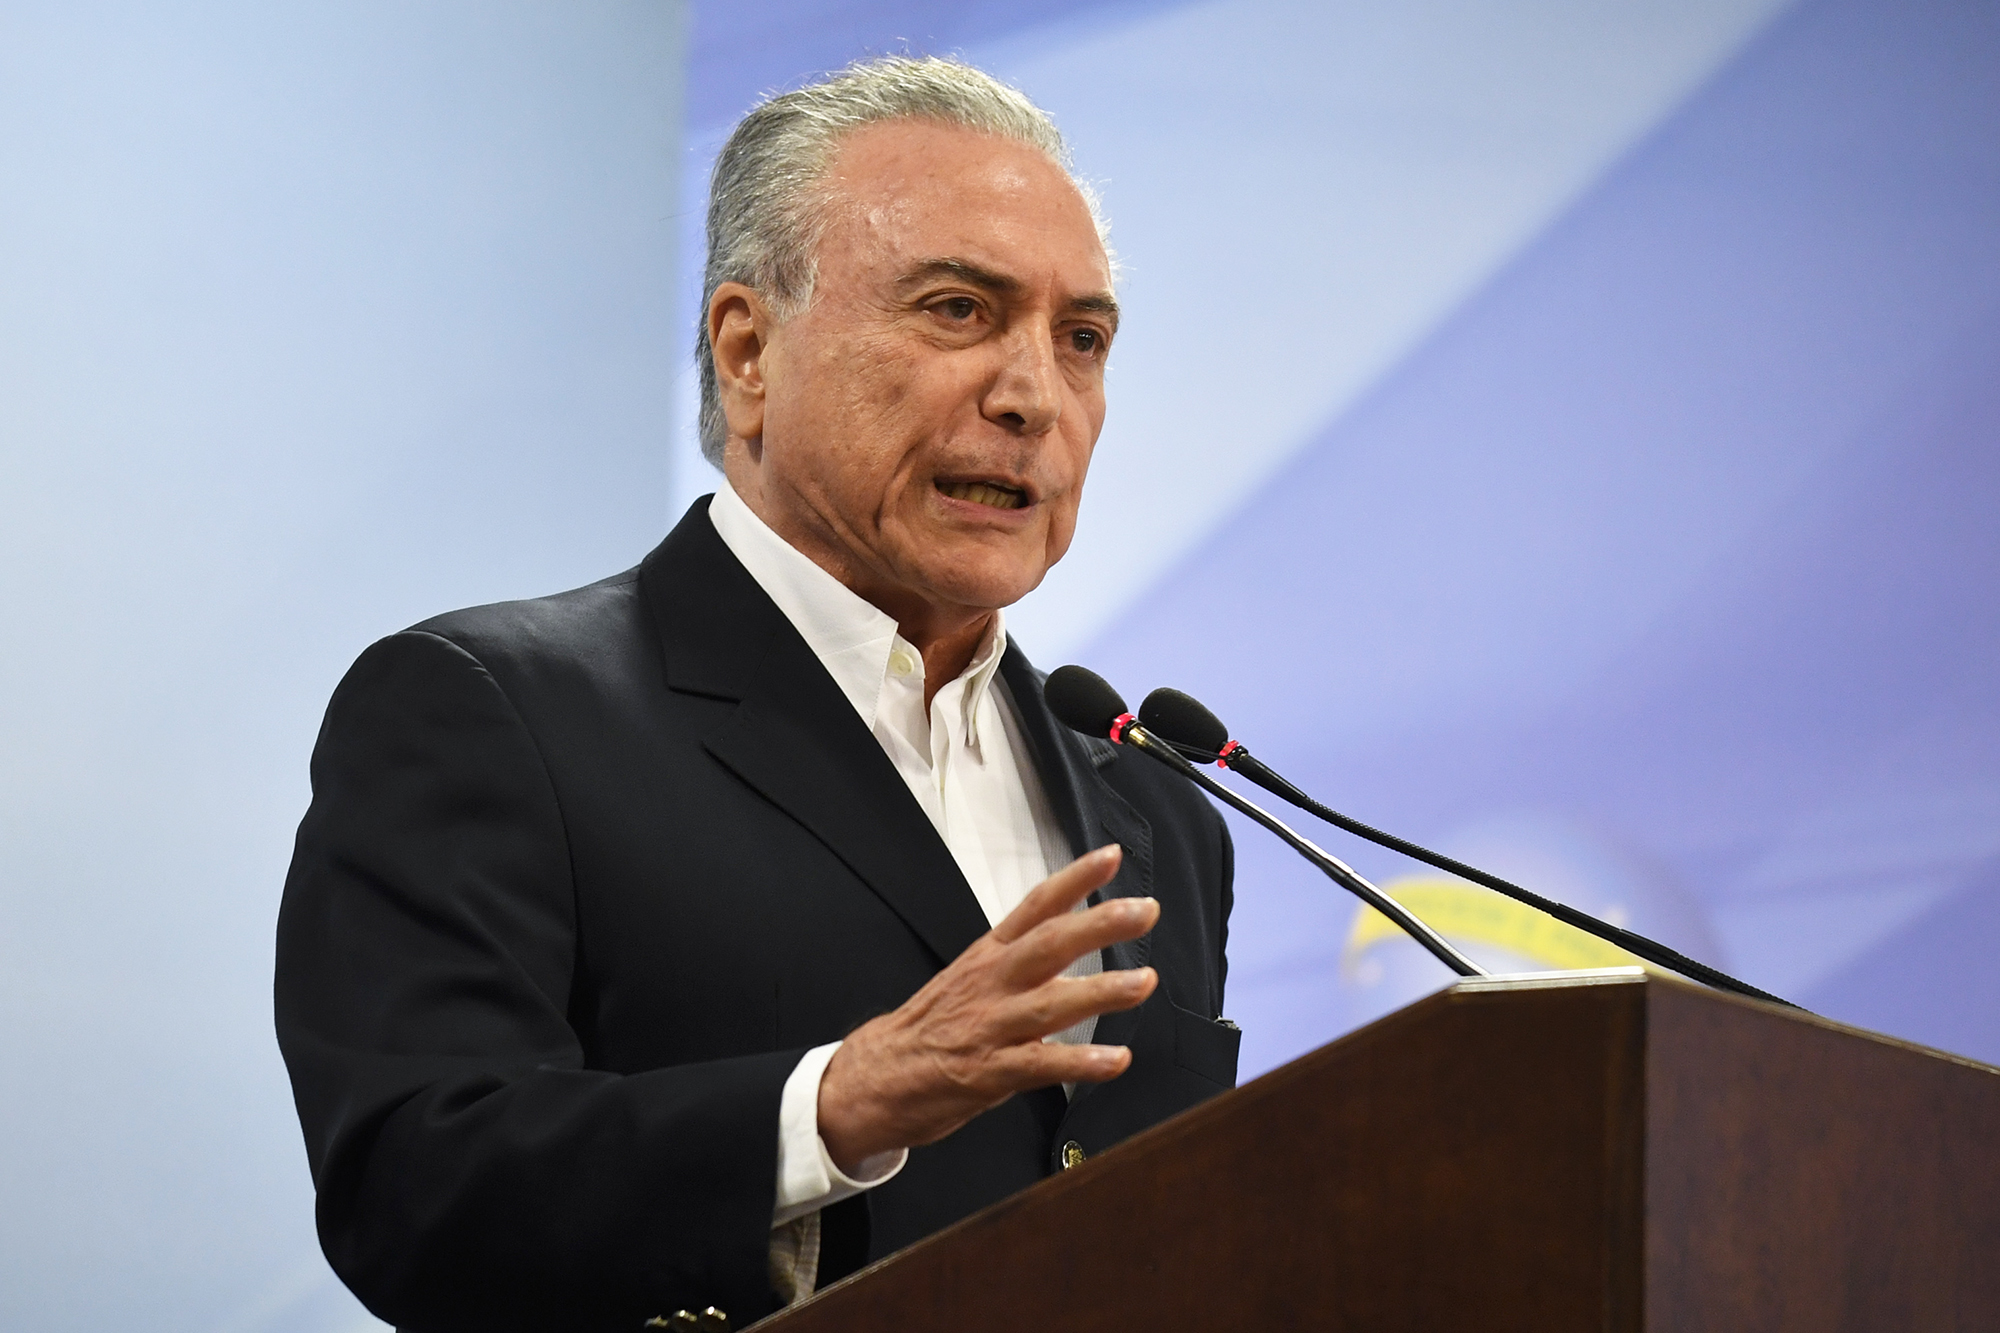 Brazil's President Michel Temer, on May 20, 2017.